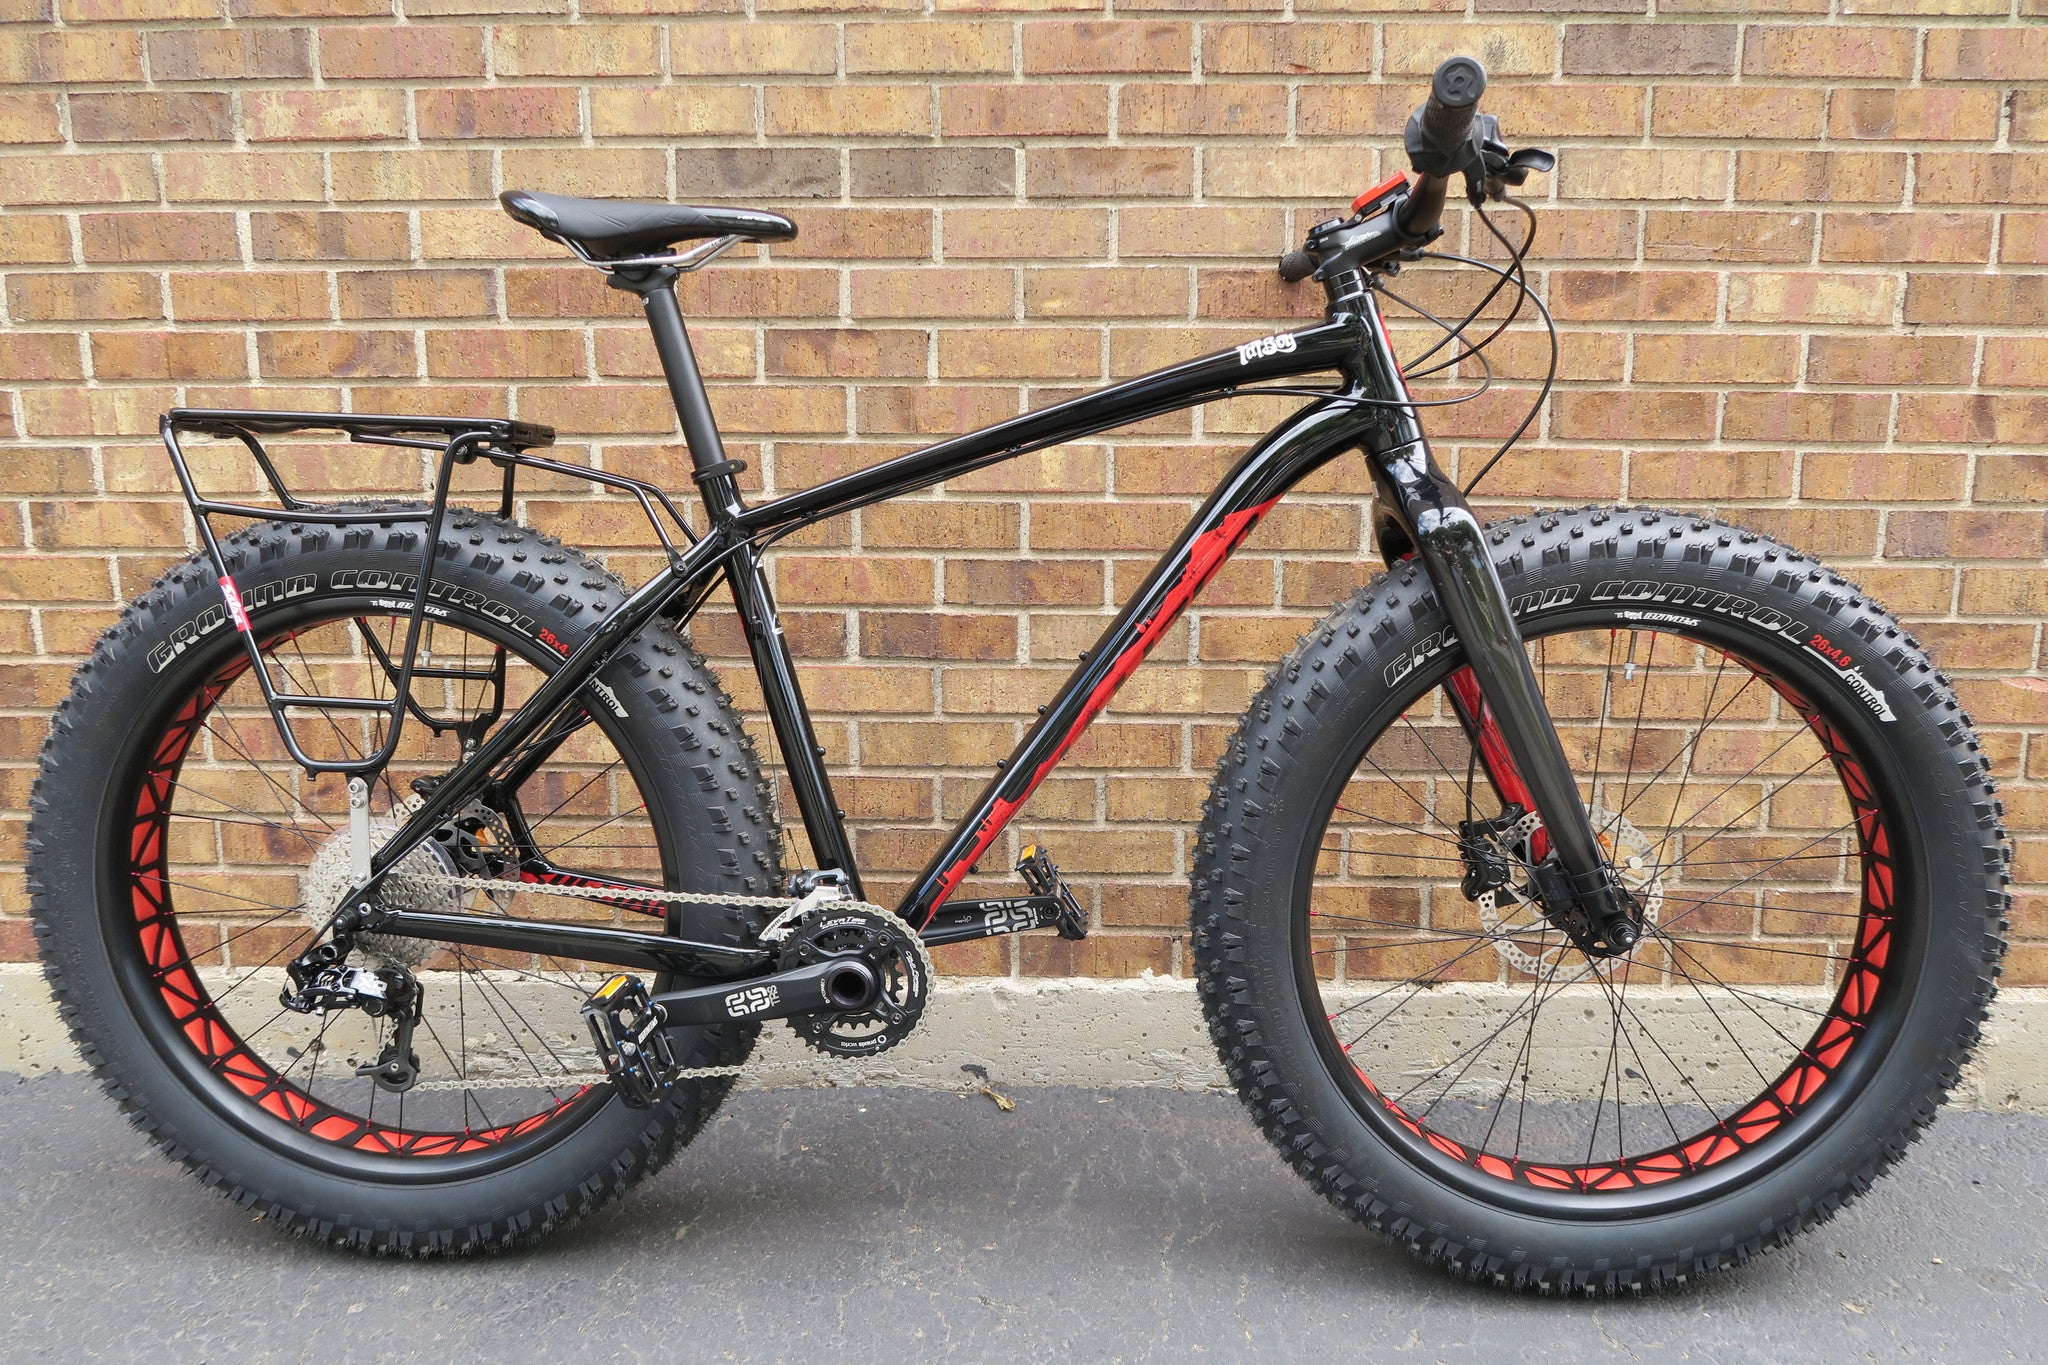 2015 SPECIALIZED FATBOY EXPERT